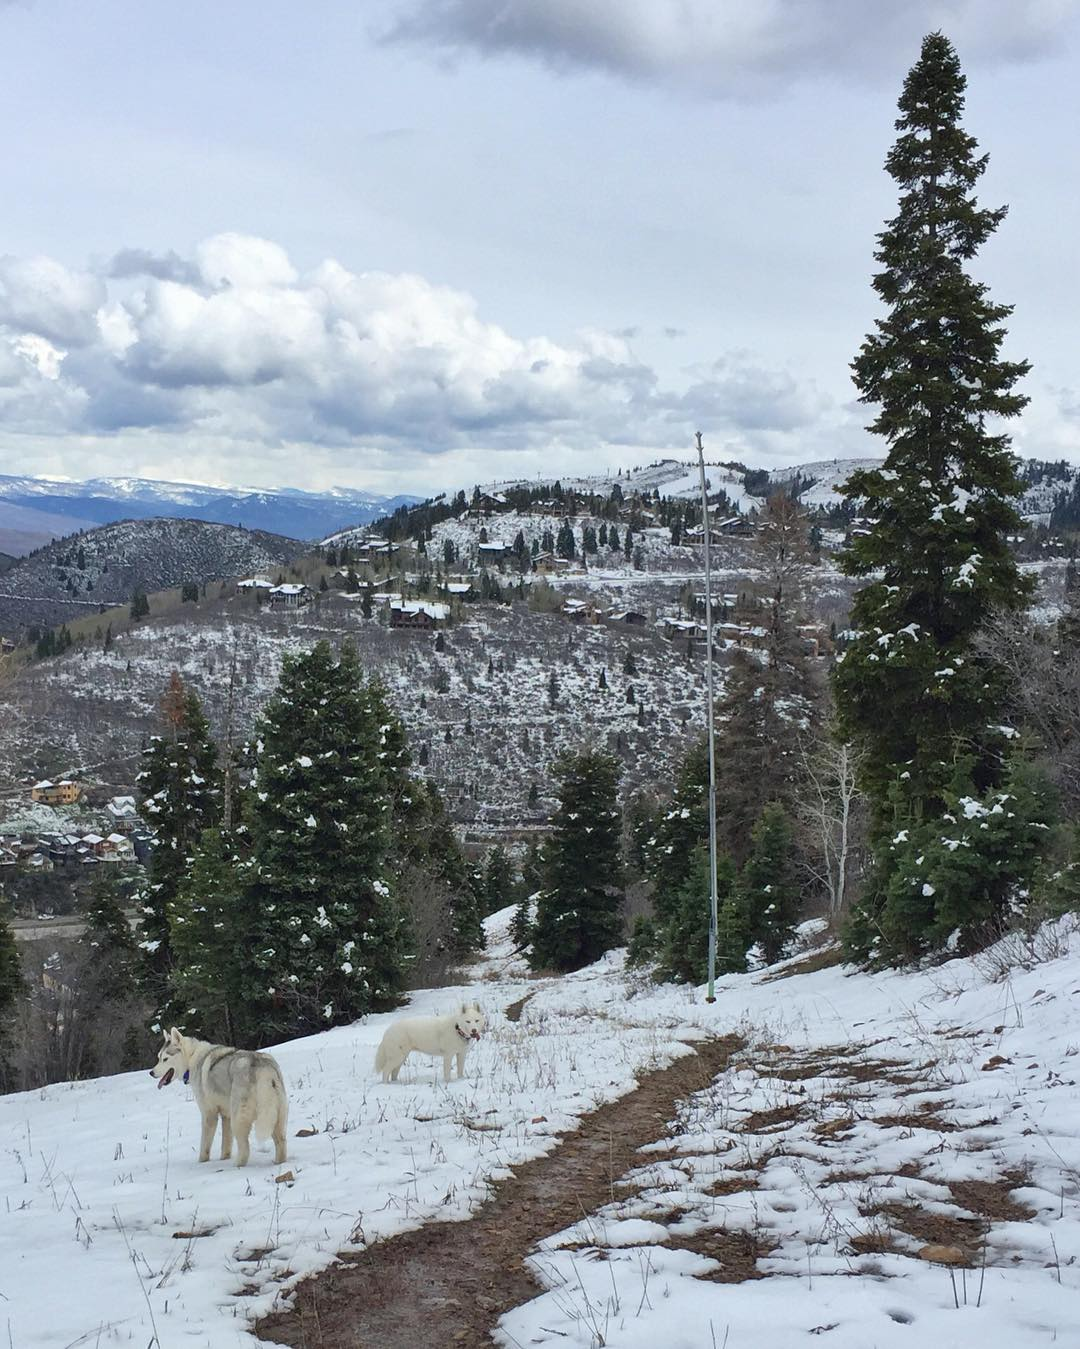 Hiking/training with my fur beasts. Quick shot from yesterday on our hike above downtown #ParkCity. #mountaintownlife #BentleyChickenFingersBlock #YukiTheDestroyer